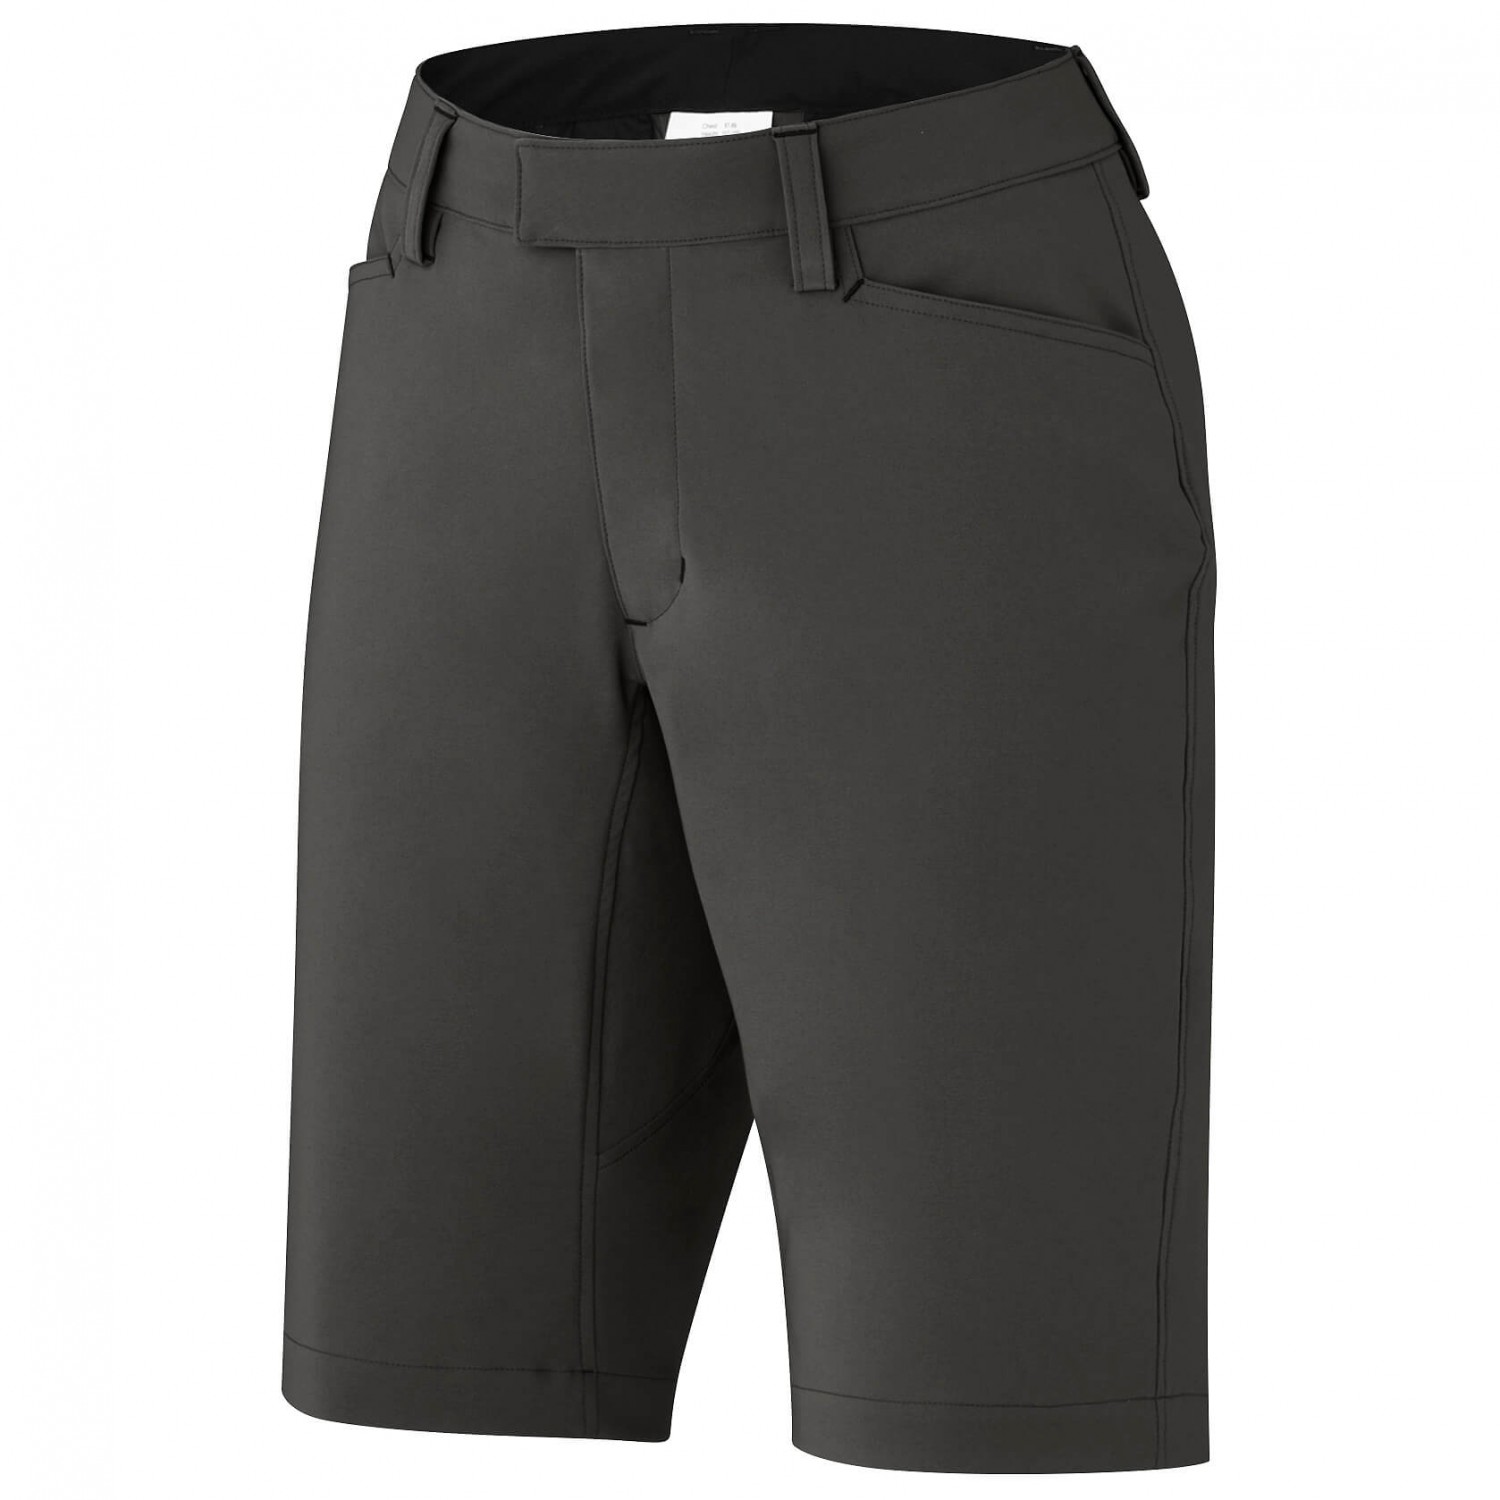 TROUSERS - Shorts CO 8uTkM7zbvG